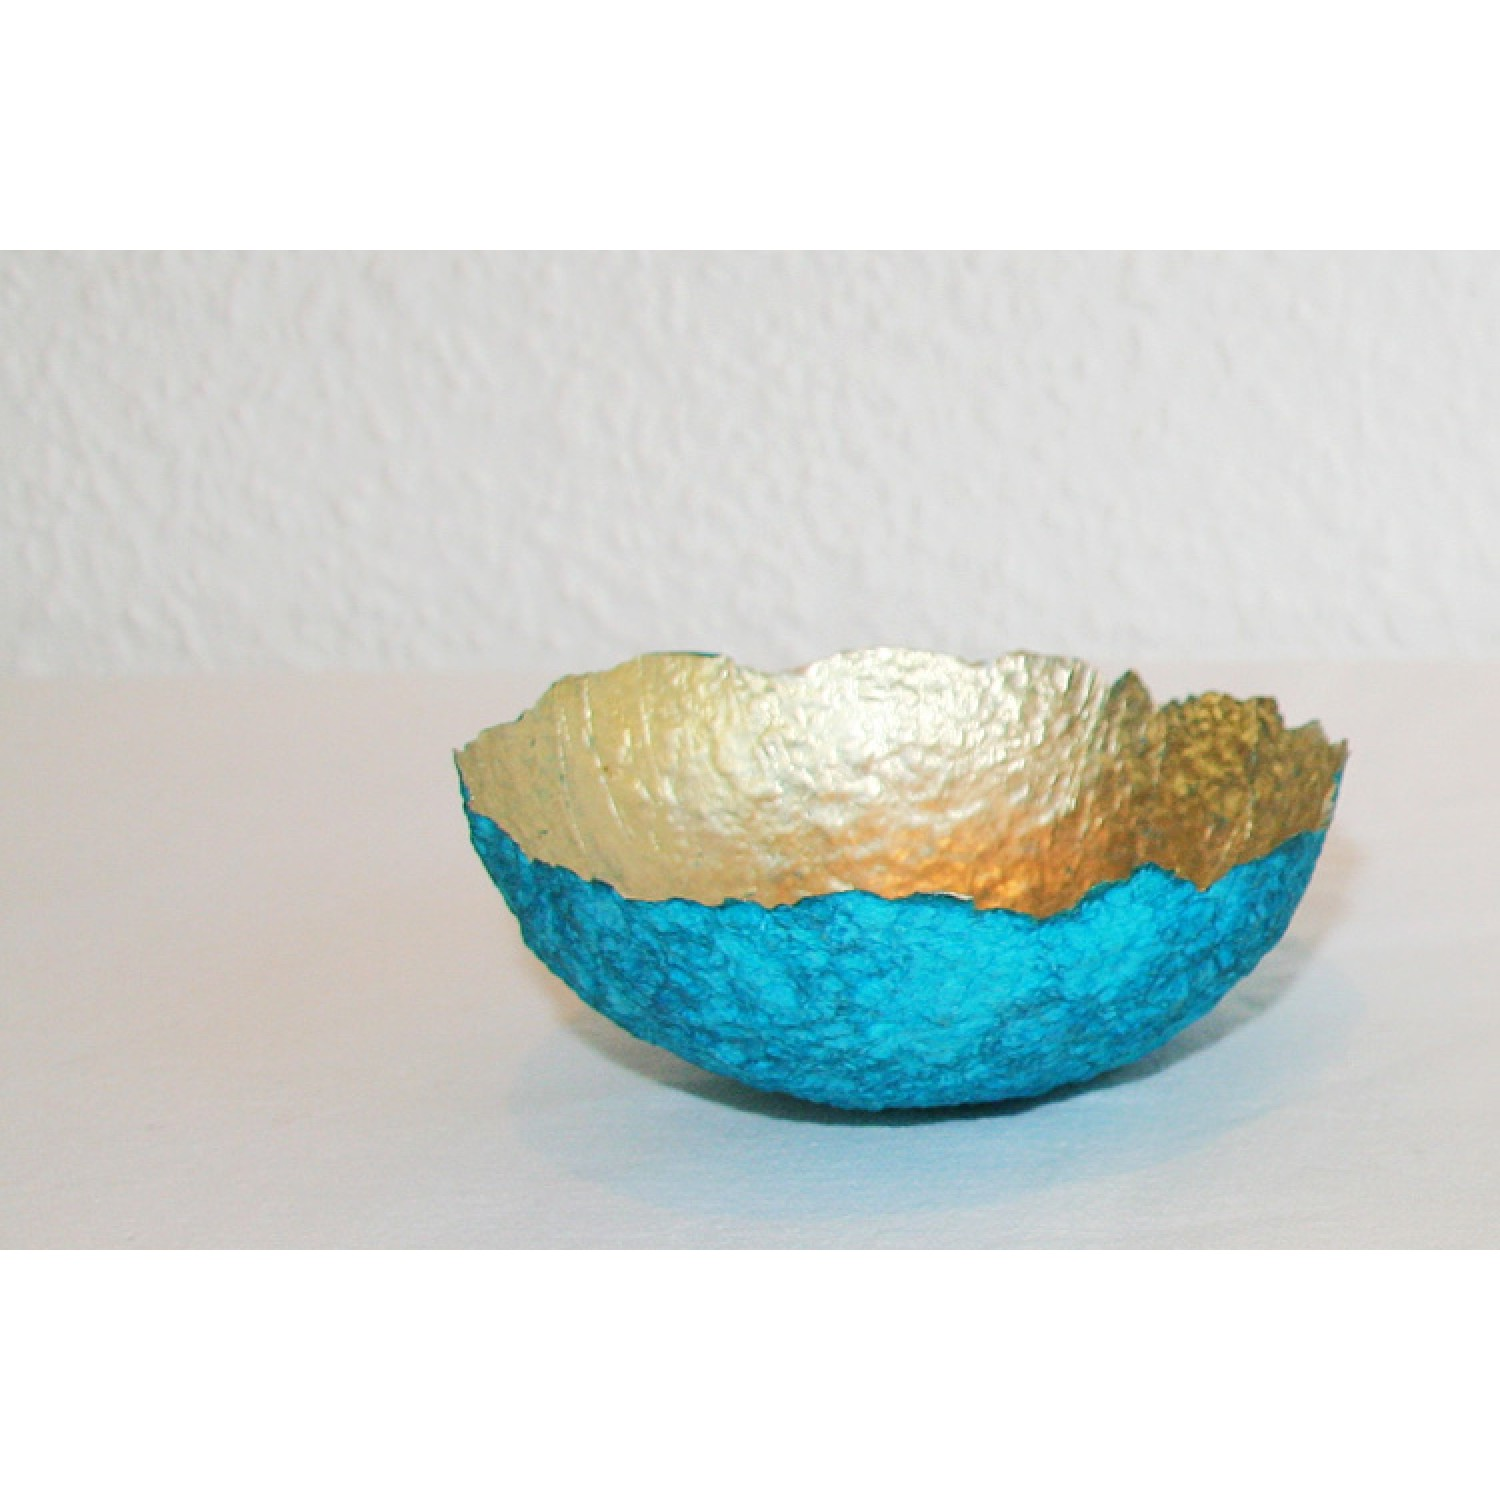 Decorative Bowl in Turquoise/Gold | Sundara Paper Art